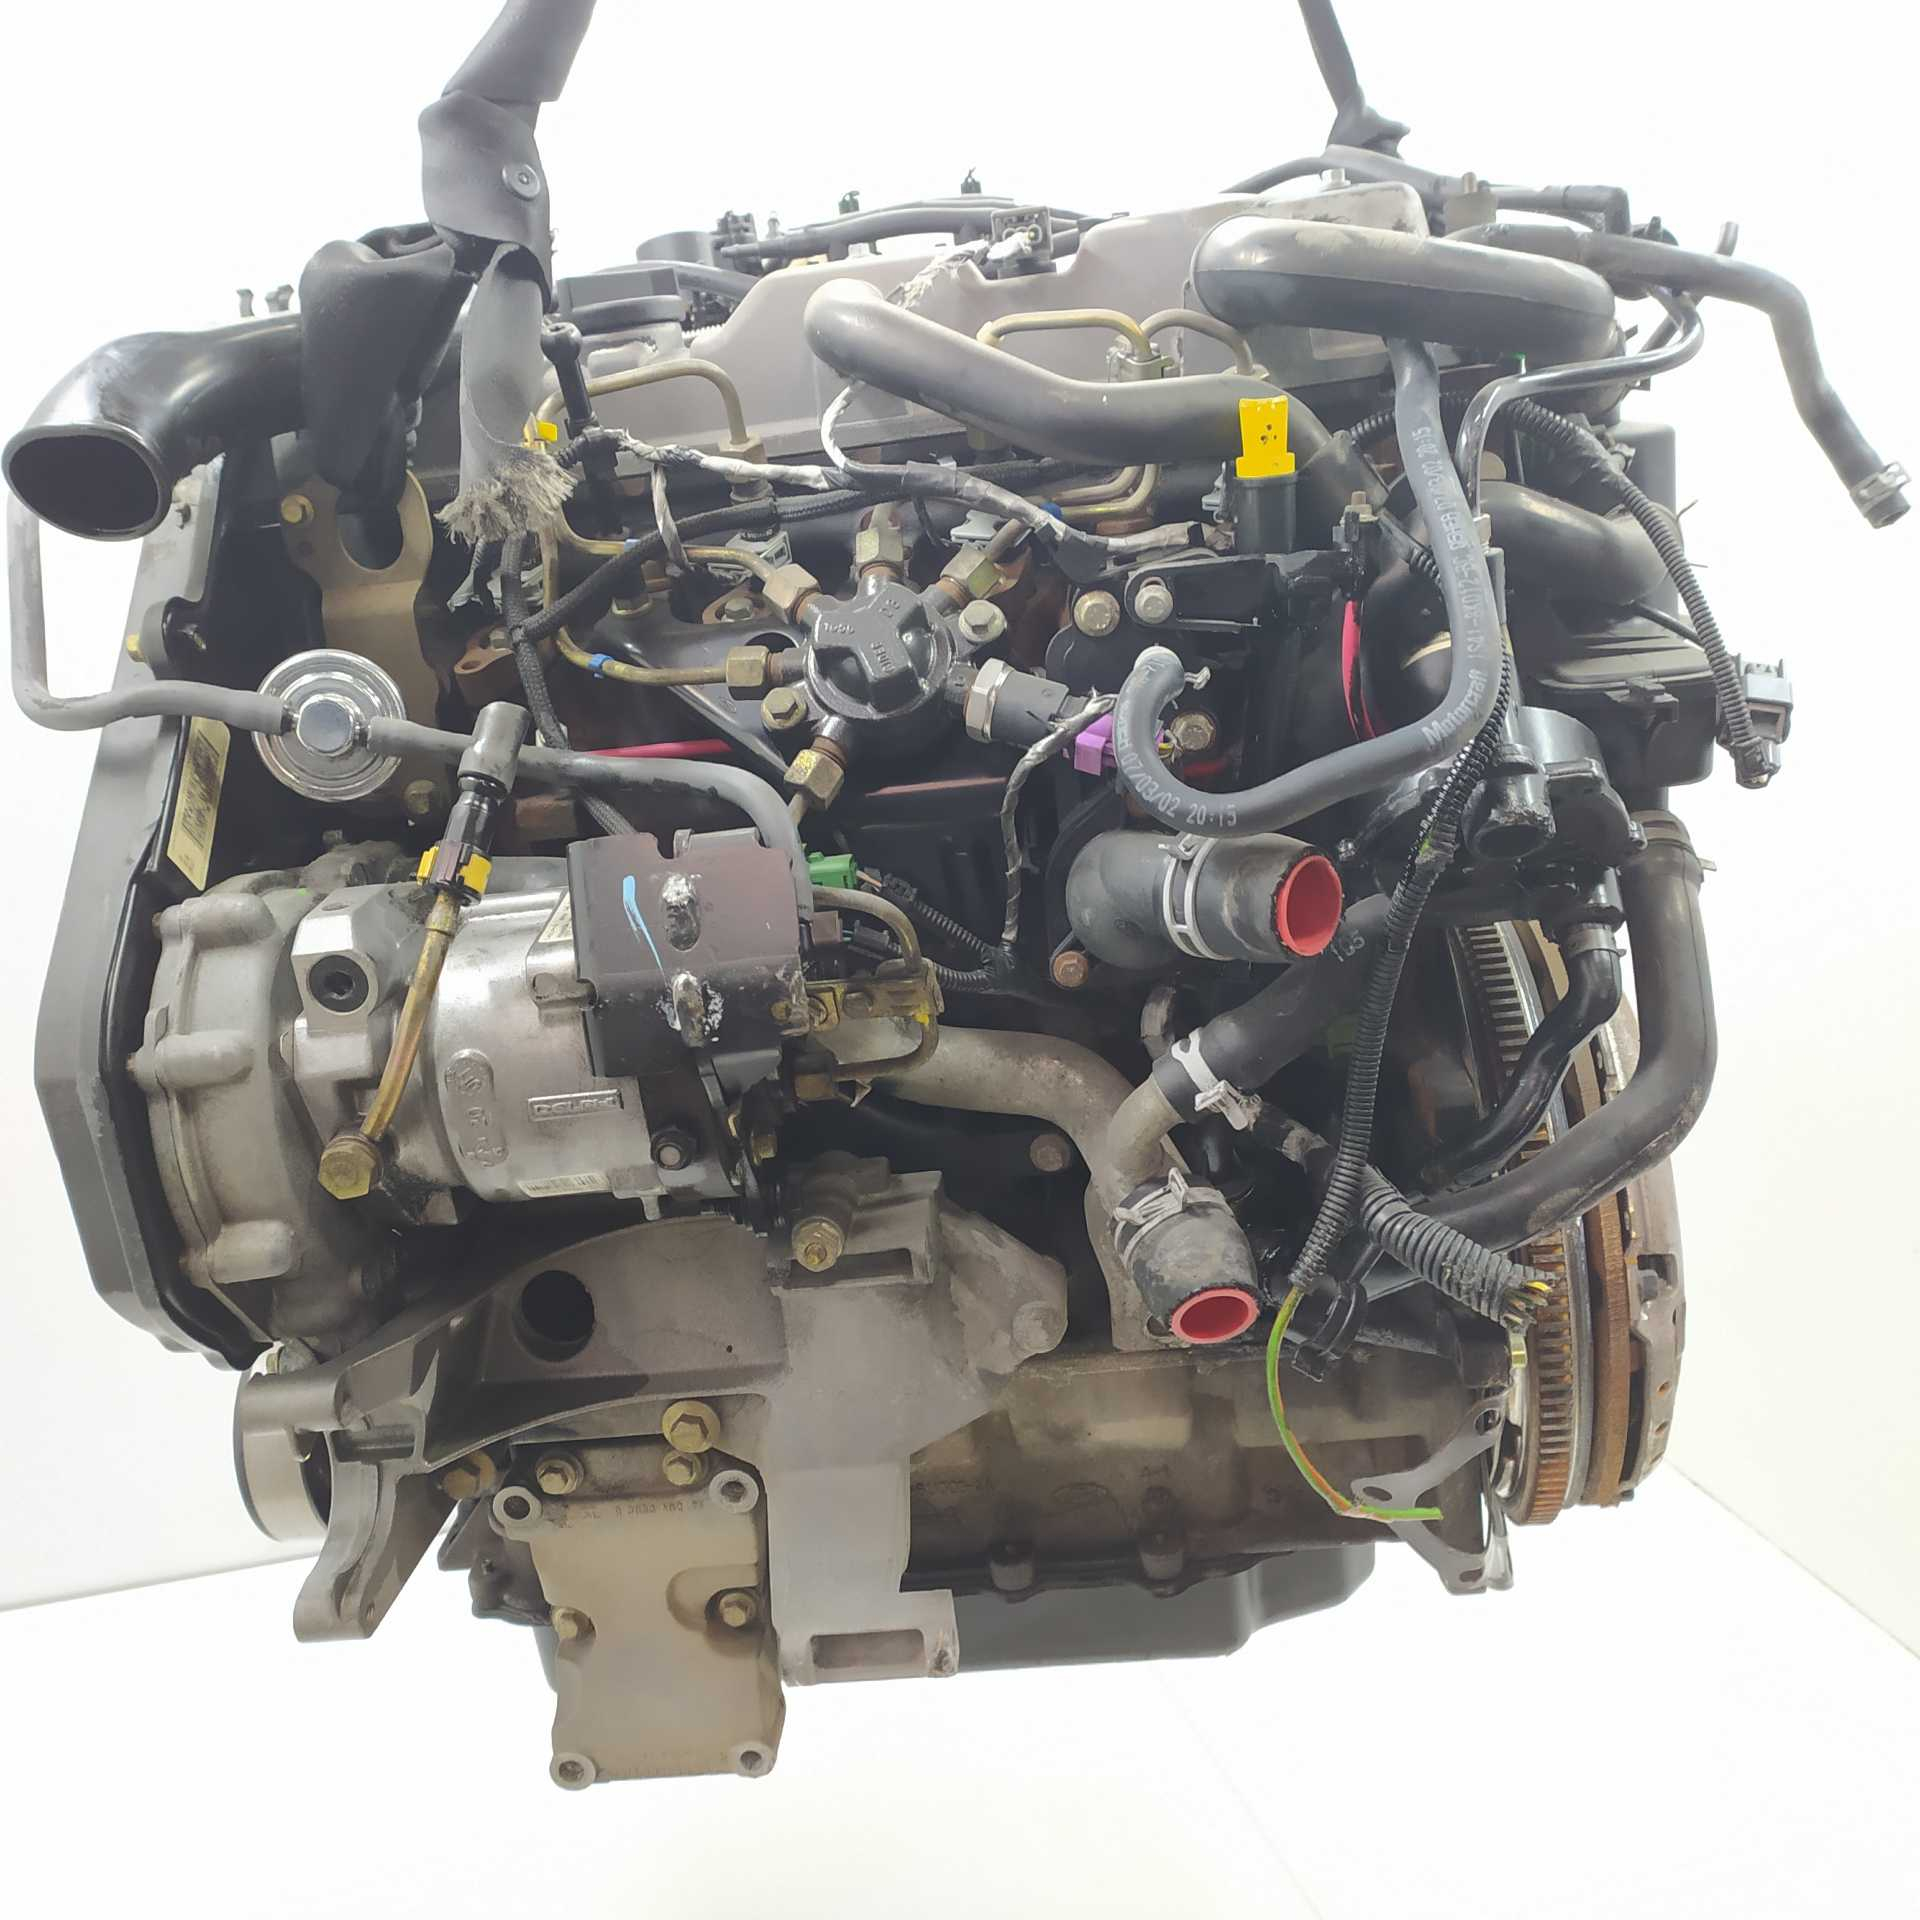 MOTOR COMPLETO FORD FOCUS 1.8 TDCi (85 KW / 115 CV) (03.2001 - 11.2004)